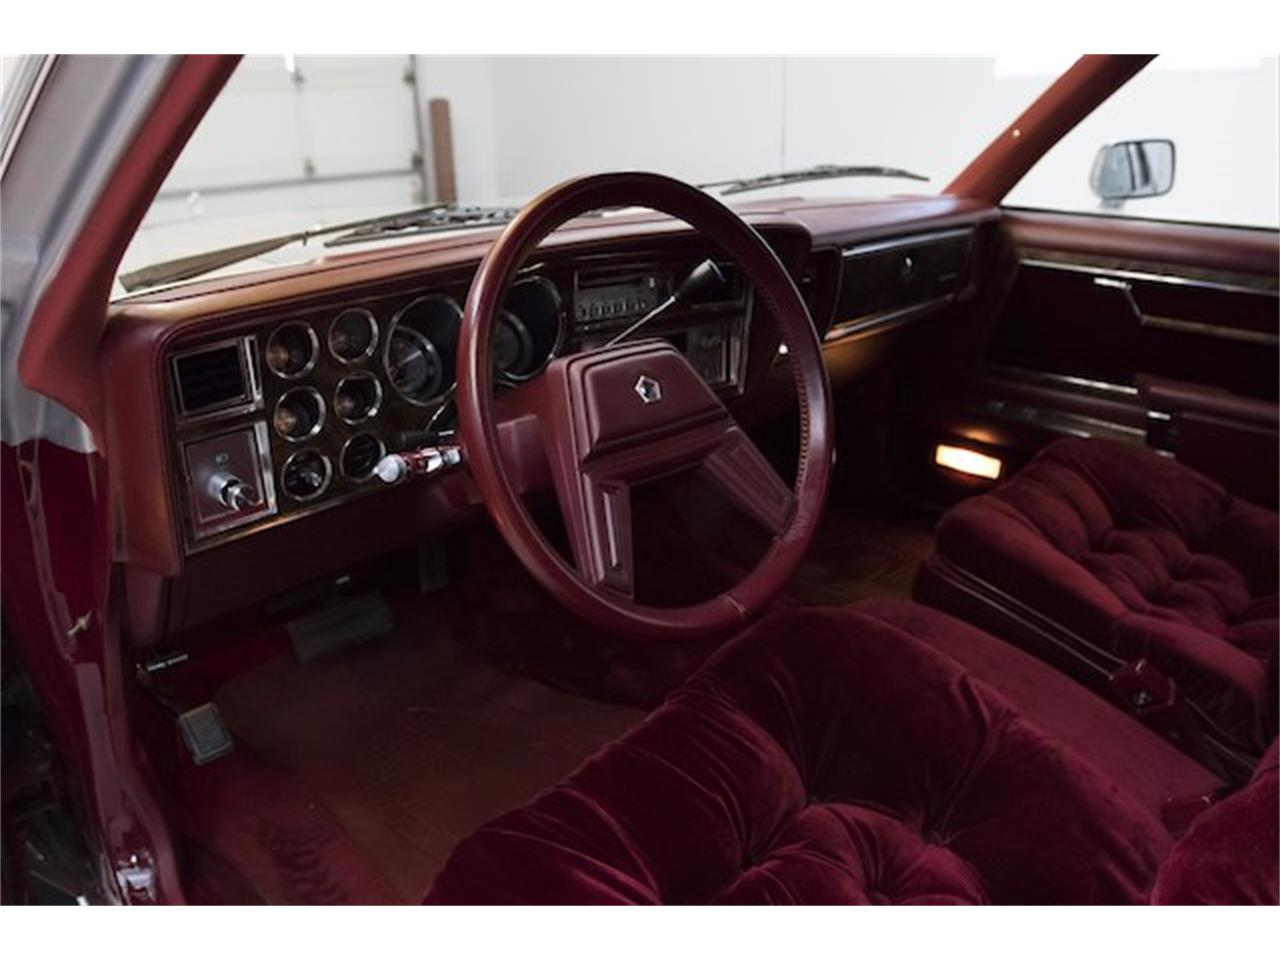 Large Picture of 1986 Chrysler Fifth Avenue located in Sioux Falls South Dakota - $13,975.00 Offered by Frankman Motor Company - MFNZ